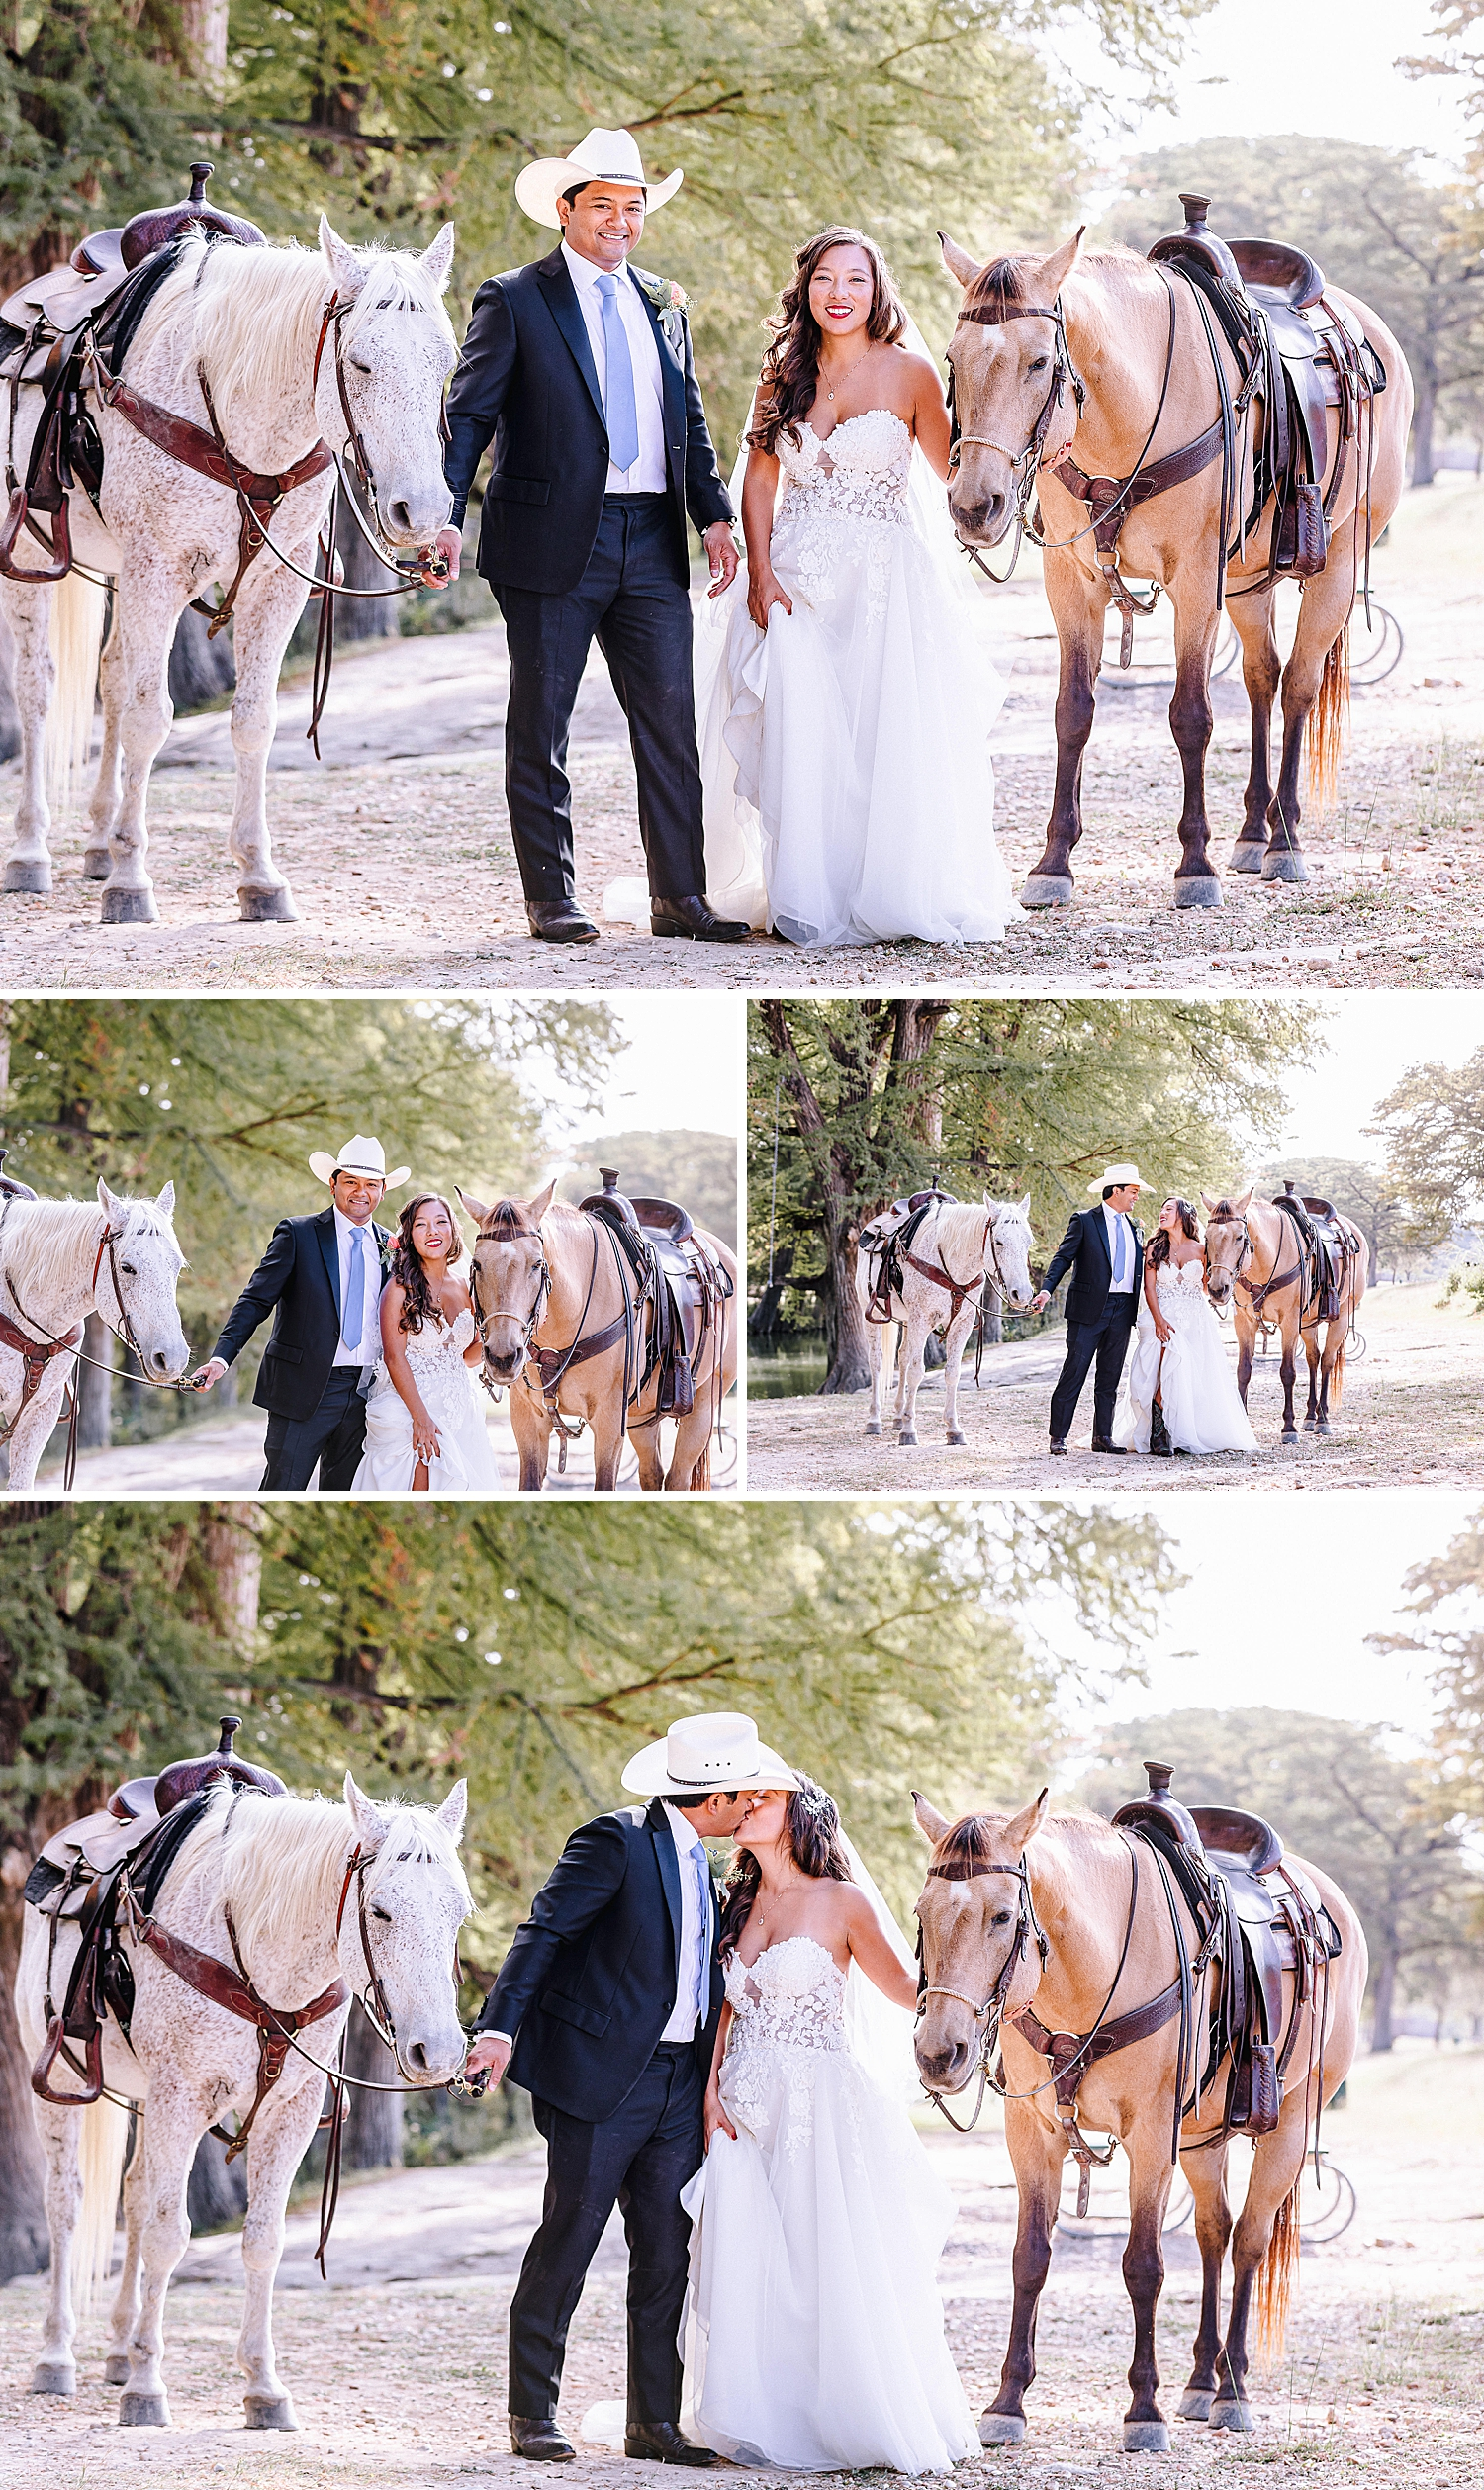 Bandera-Texas-Wedding-Photographer-Bride-Groom-on-Horses-Carly-Barton-Photography_0072.jpg